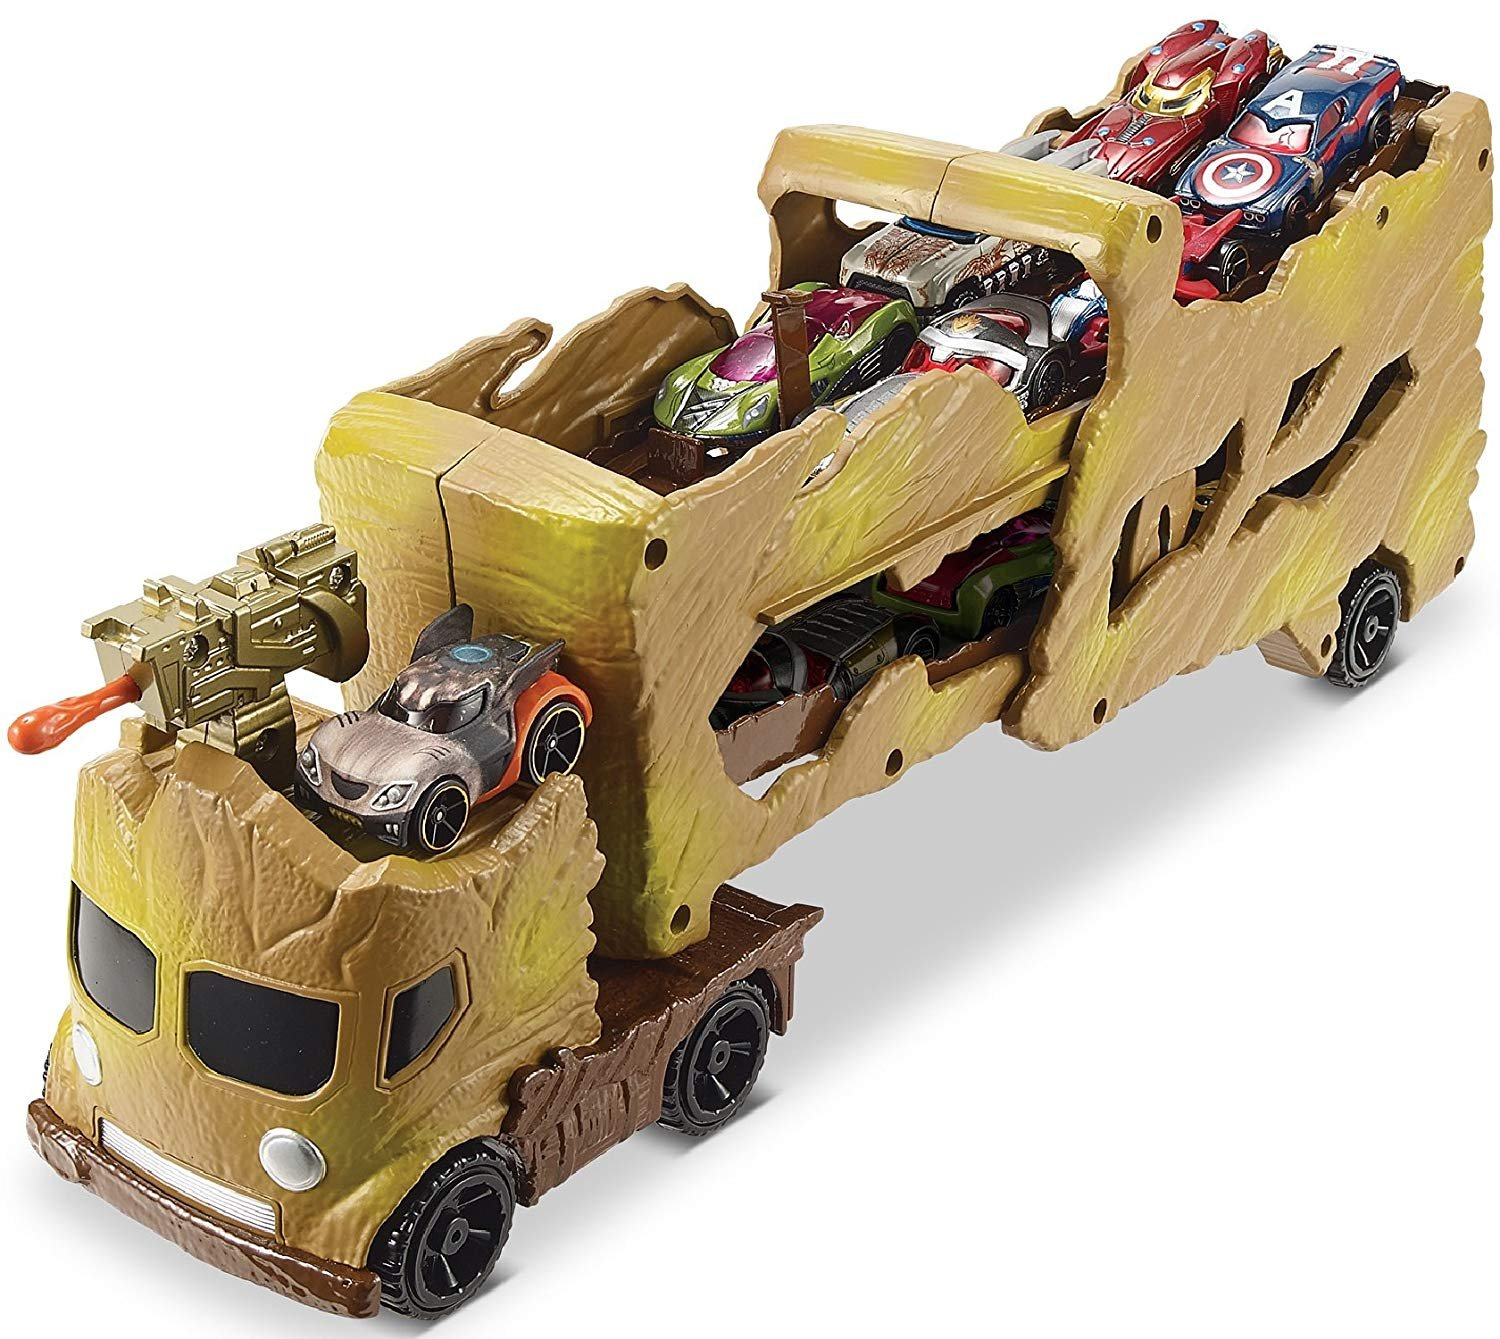 Hot Wheels Guardians of the Galaxy Groot Hauler